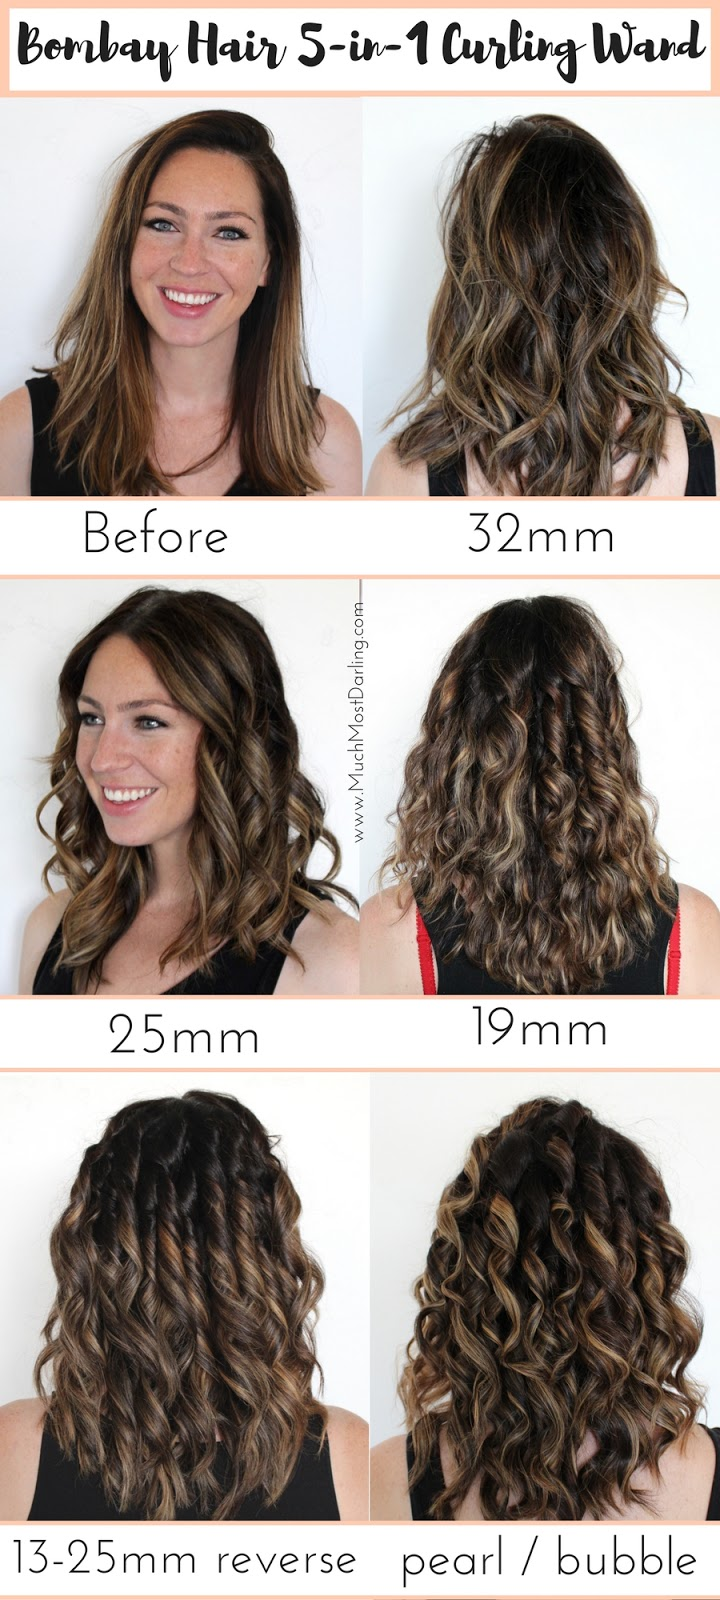 5 In 1 Curling Wand In Depth Blog Post Bombay Hair